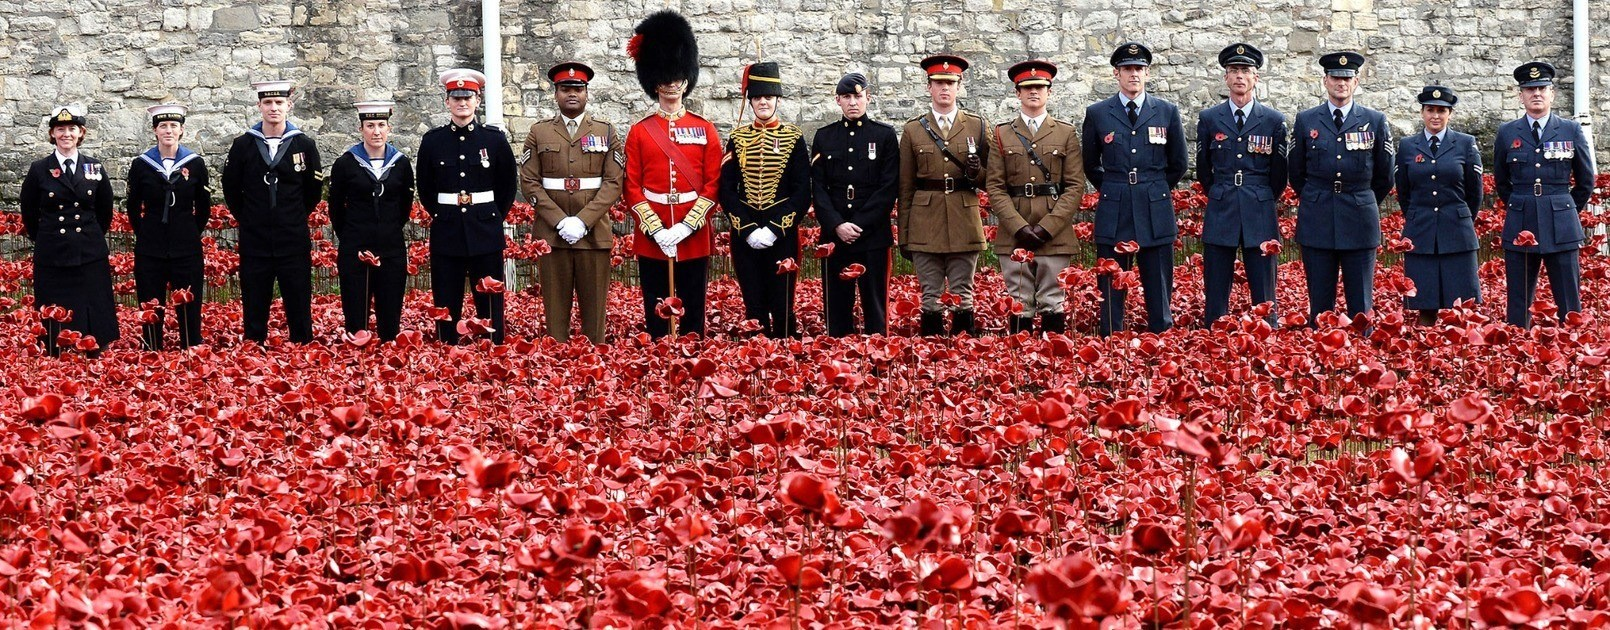 Uncouth Act at Remembrance Day Inspires Award-Winning Poem